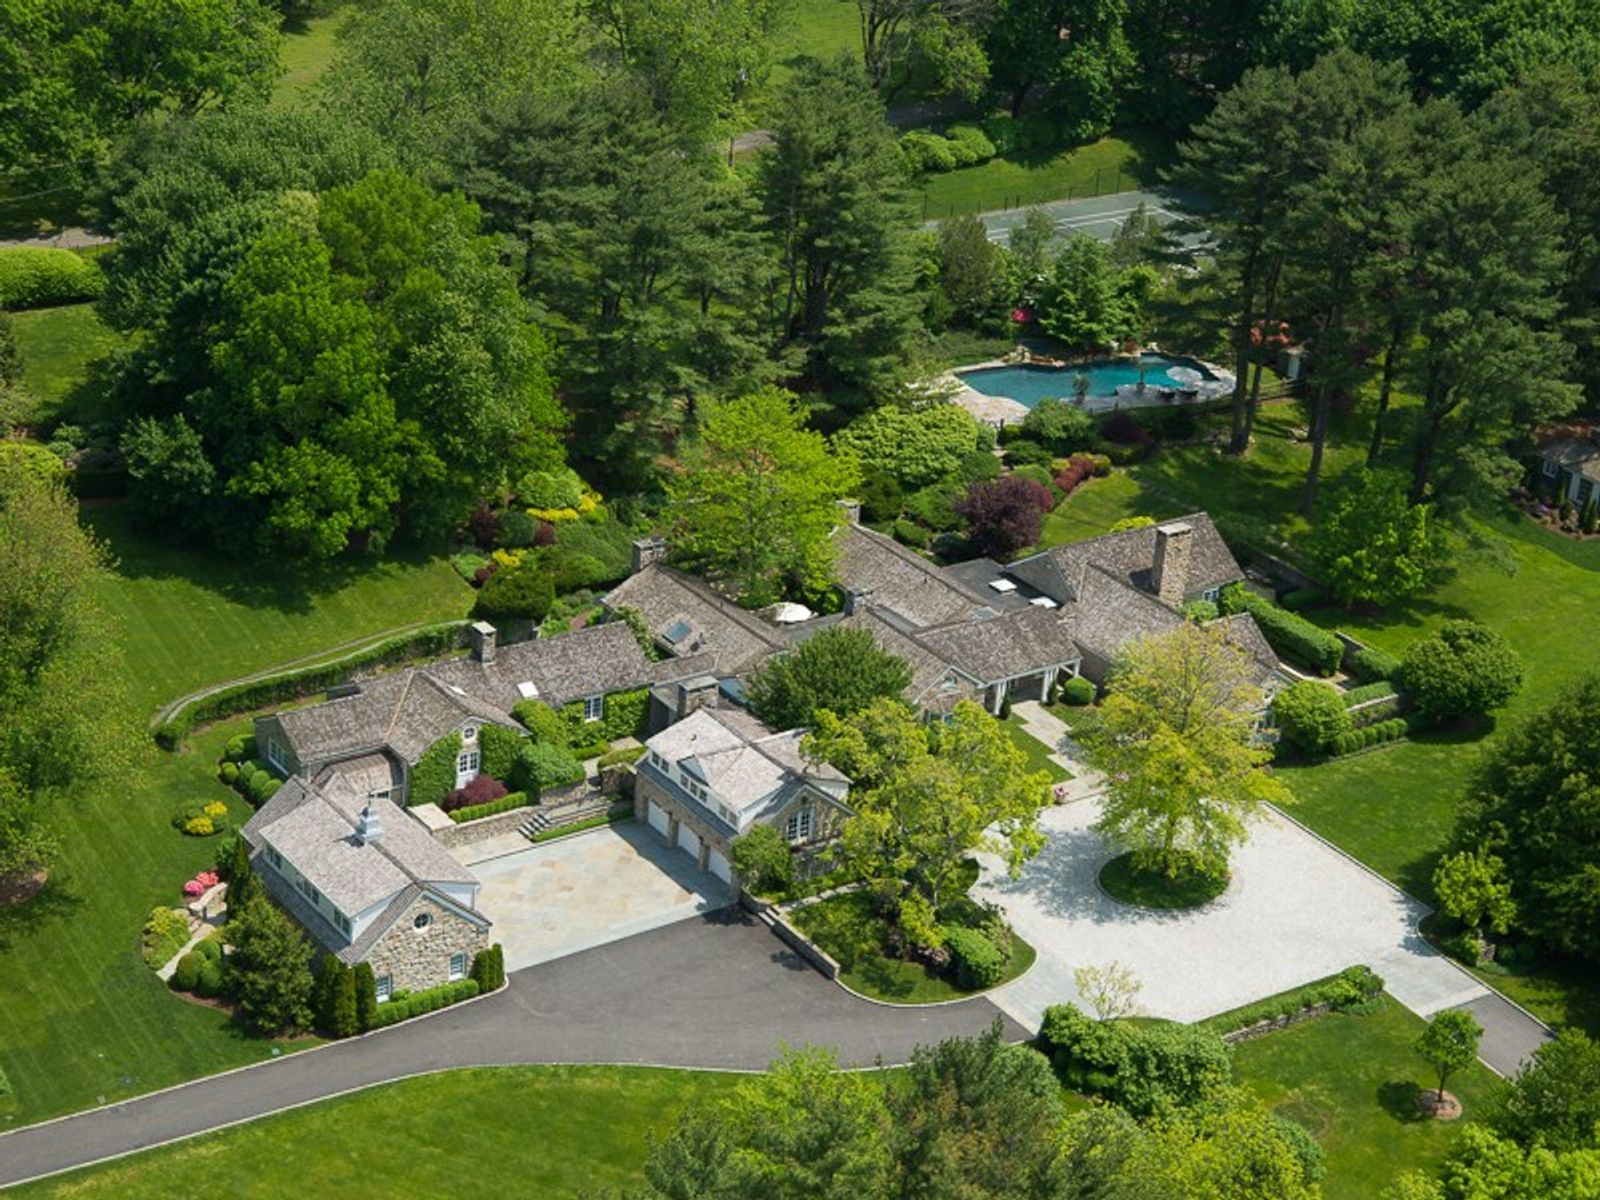 Private Country Estate, Greenwich CT Single Family Home - Greenwich Real Estate